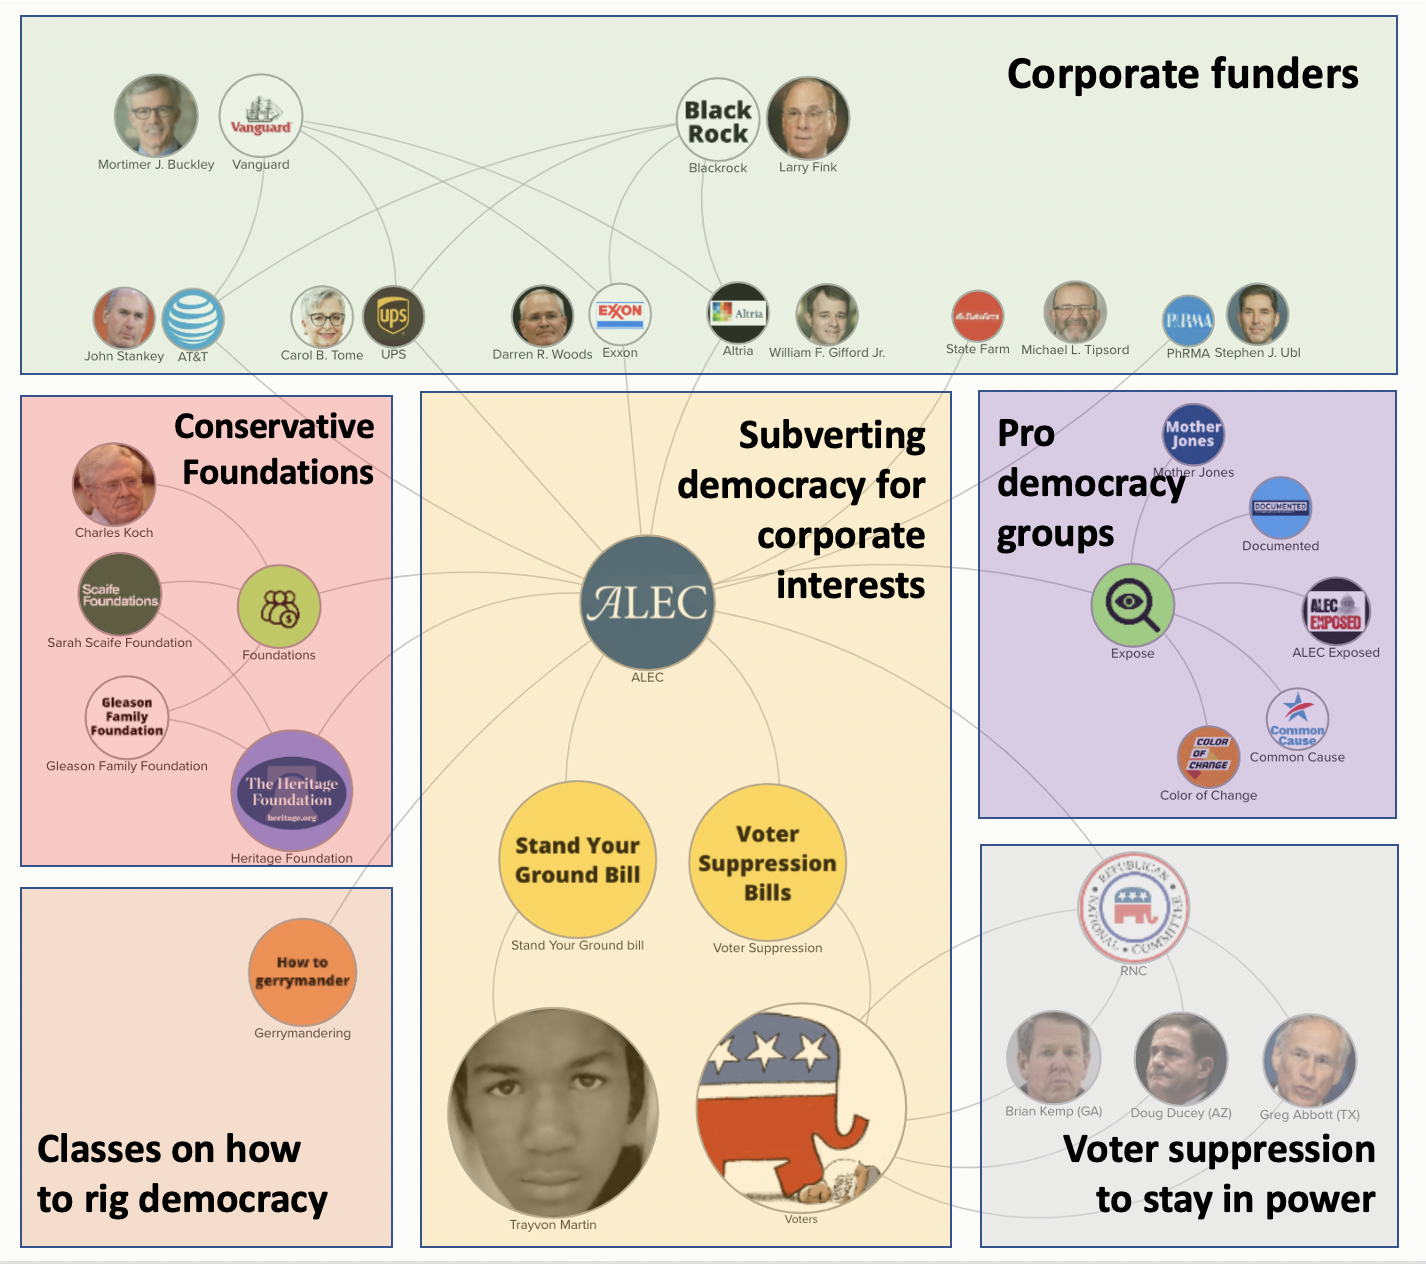 ALEC and the corporations subverting democracy for profits